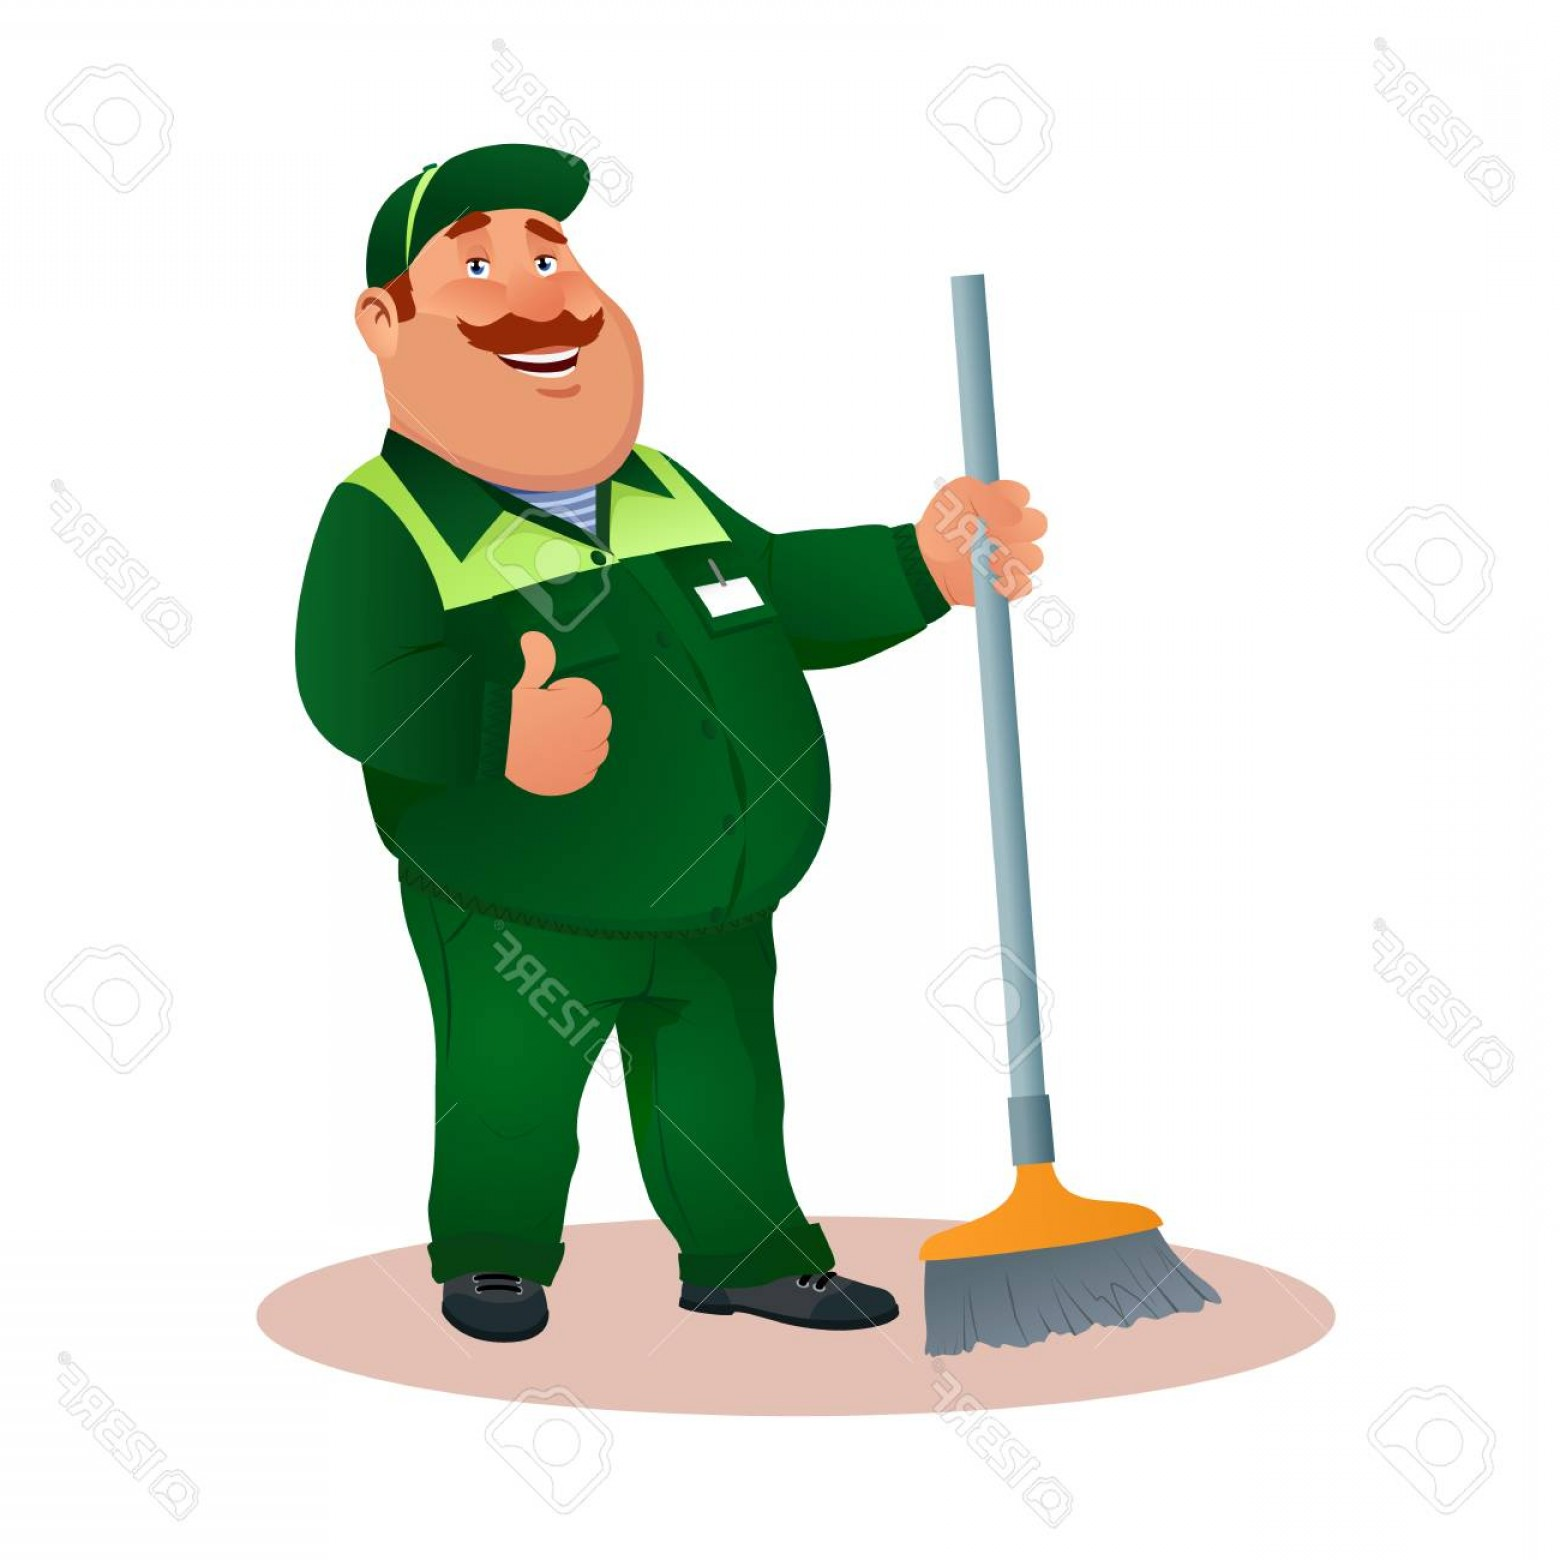 Cleaning Vector Janitorail: Photostock Vector Happy Flat Cleaner In Uniform From Janitorial Service Or Office Cleaning Funny Cartoon Janitor With